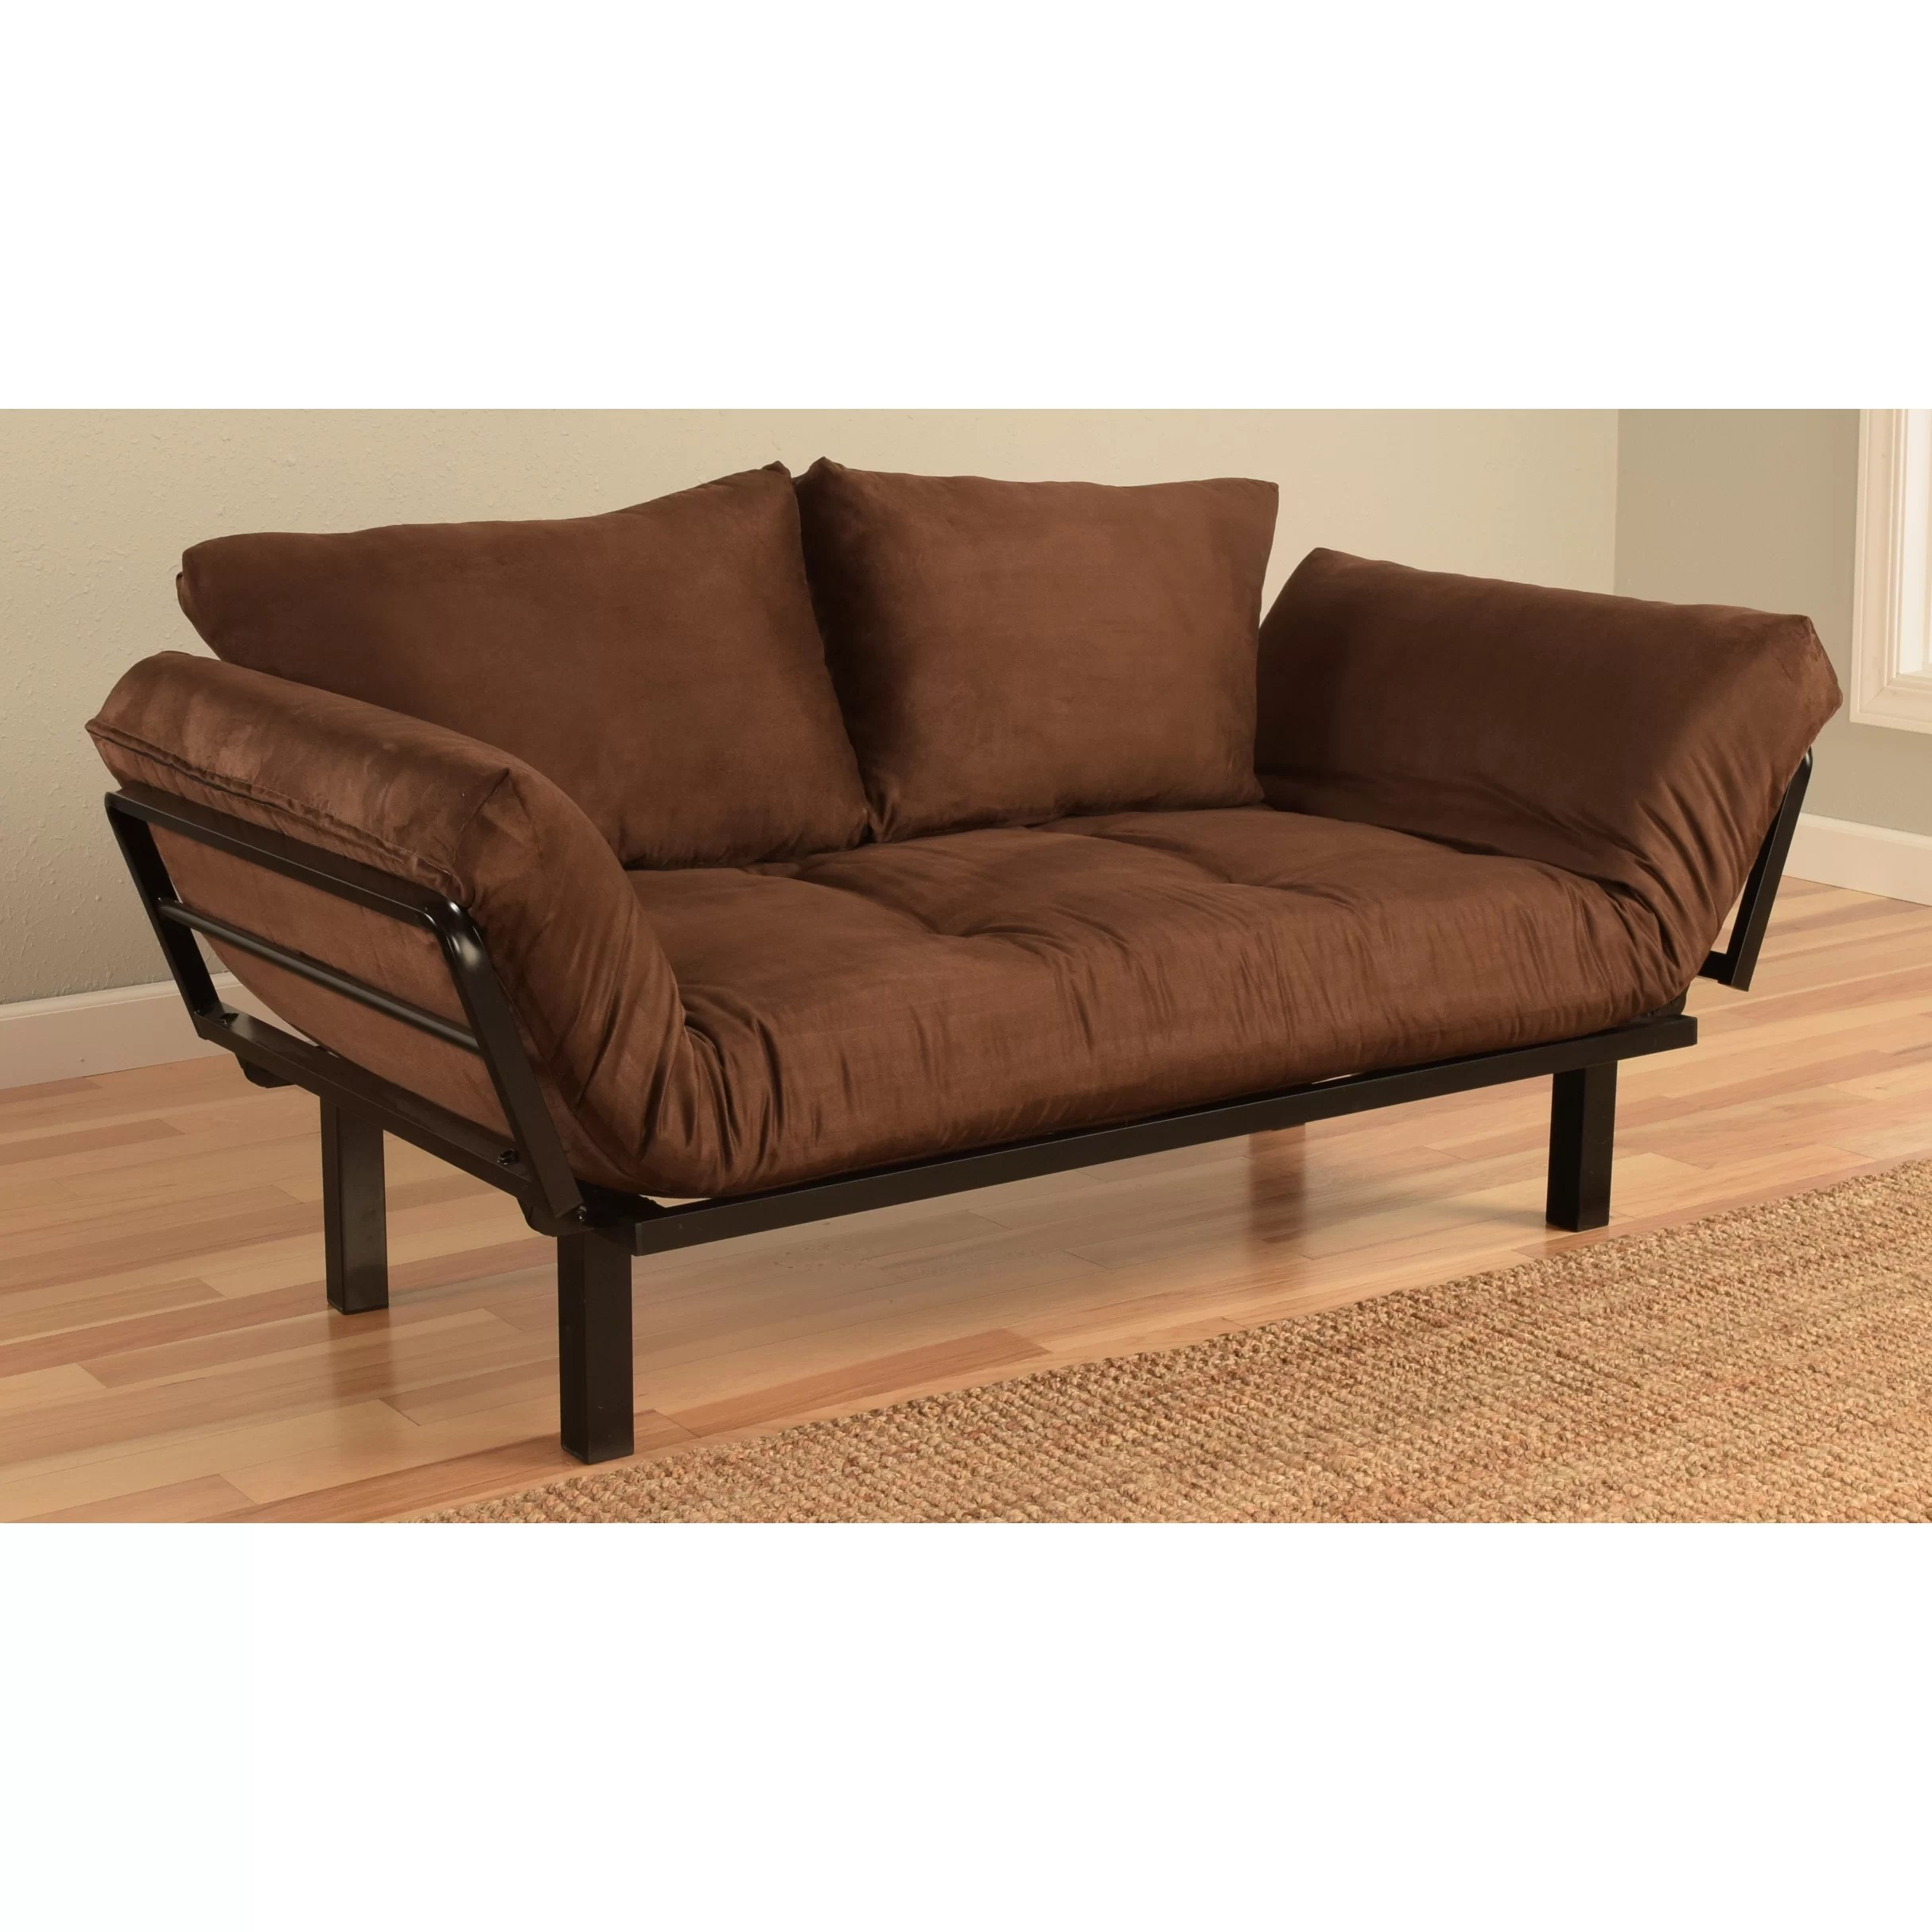 convertible futon sofa bed lounger sfc kodiak furniture spacely